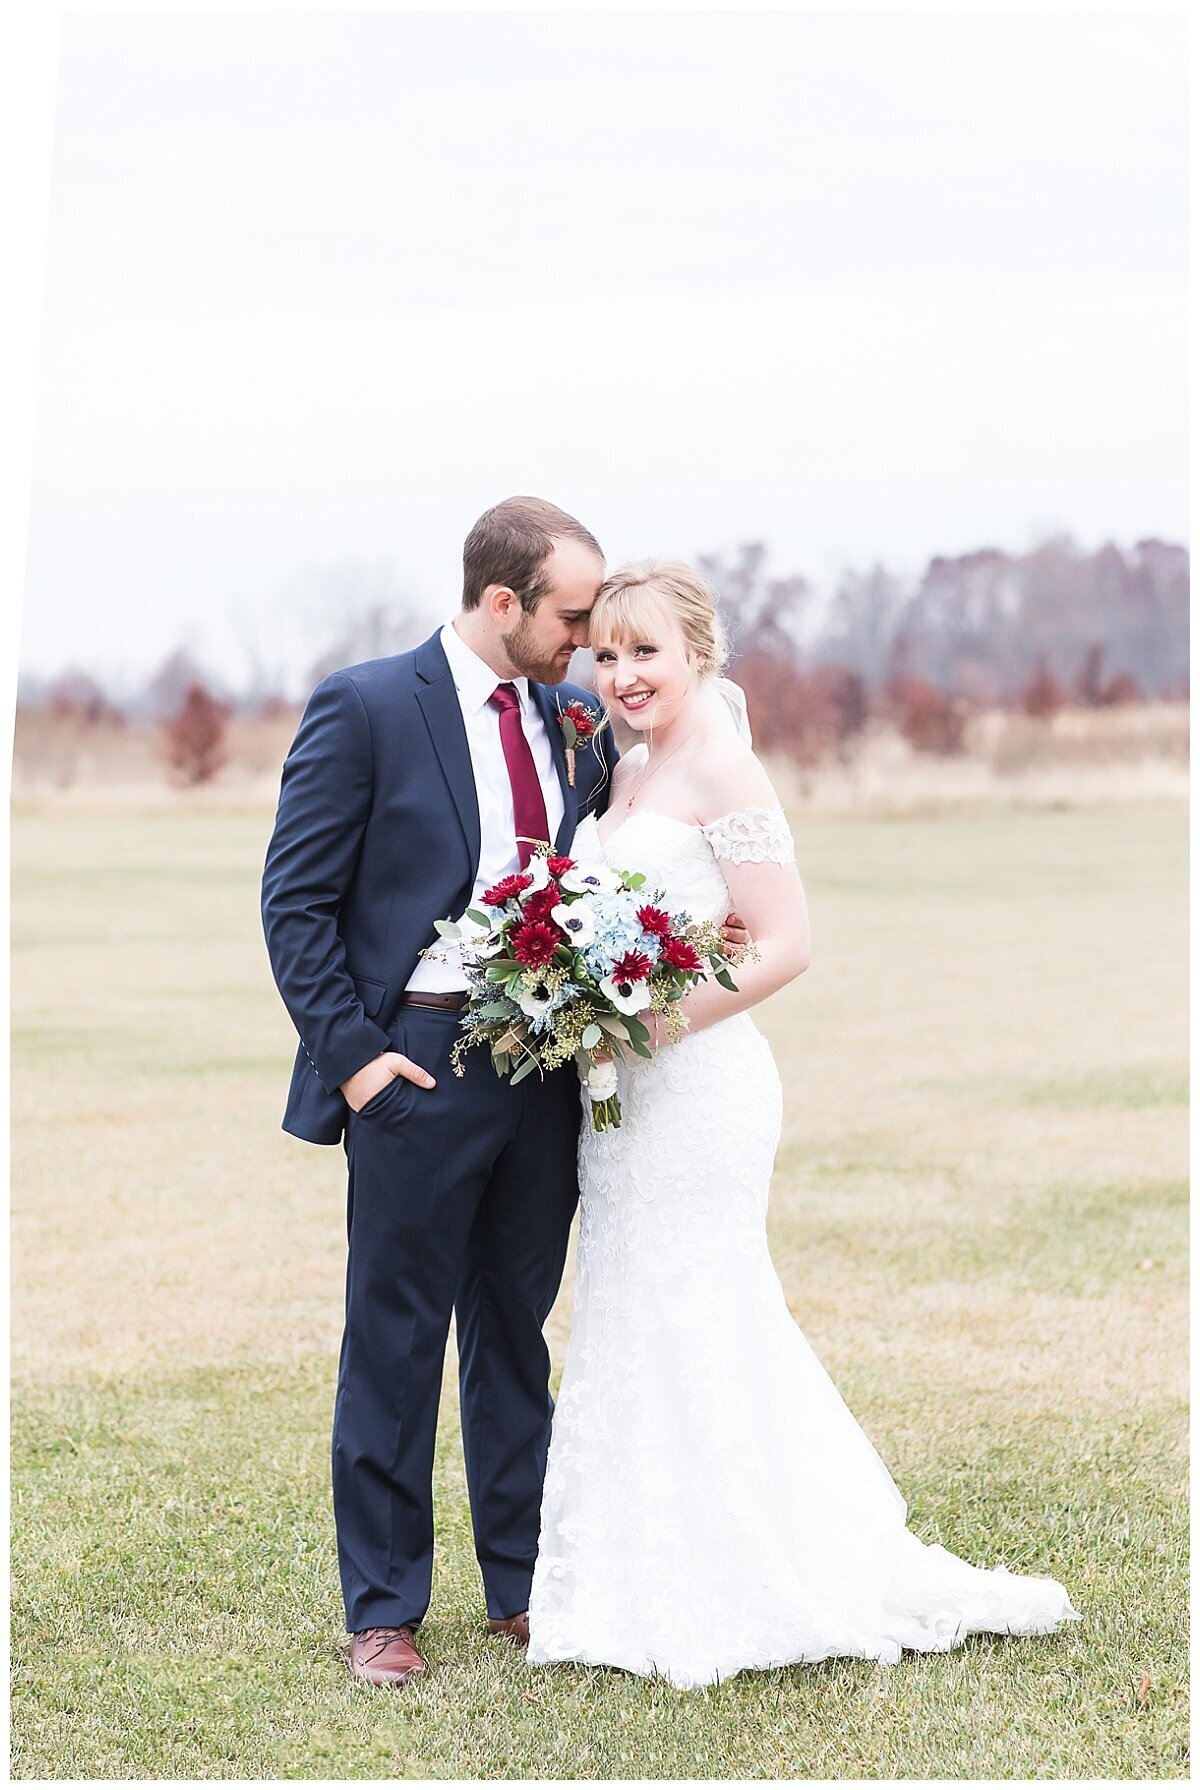 Magical Winter Wedding photo by Simply Seeking Photography_1173